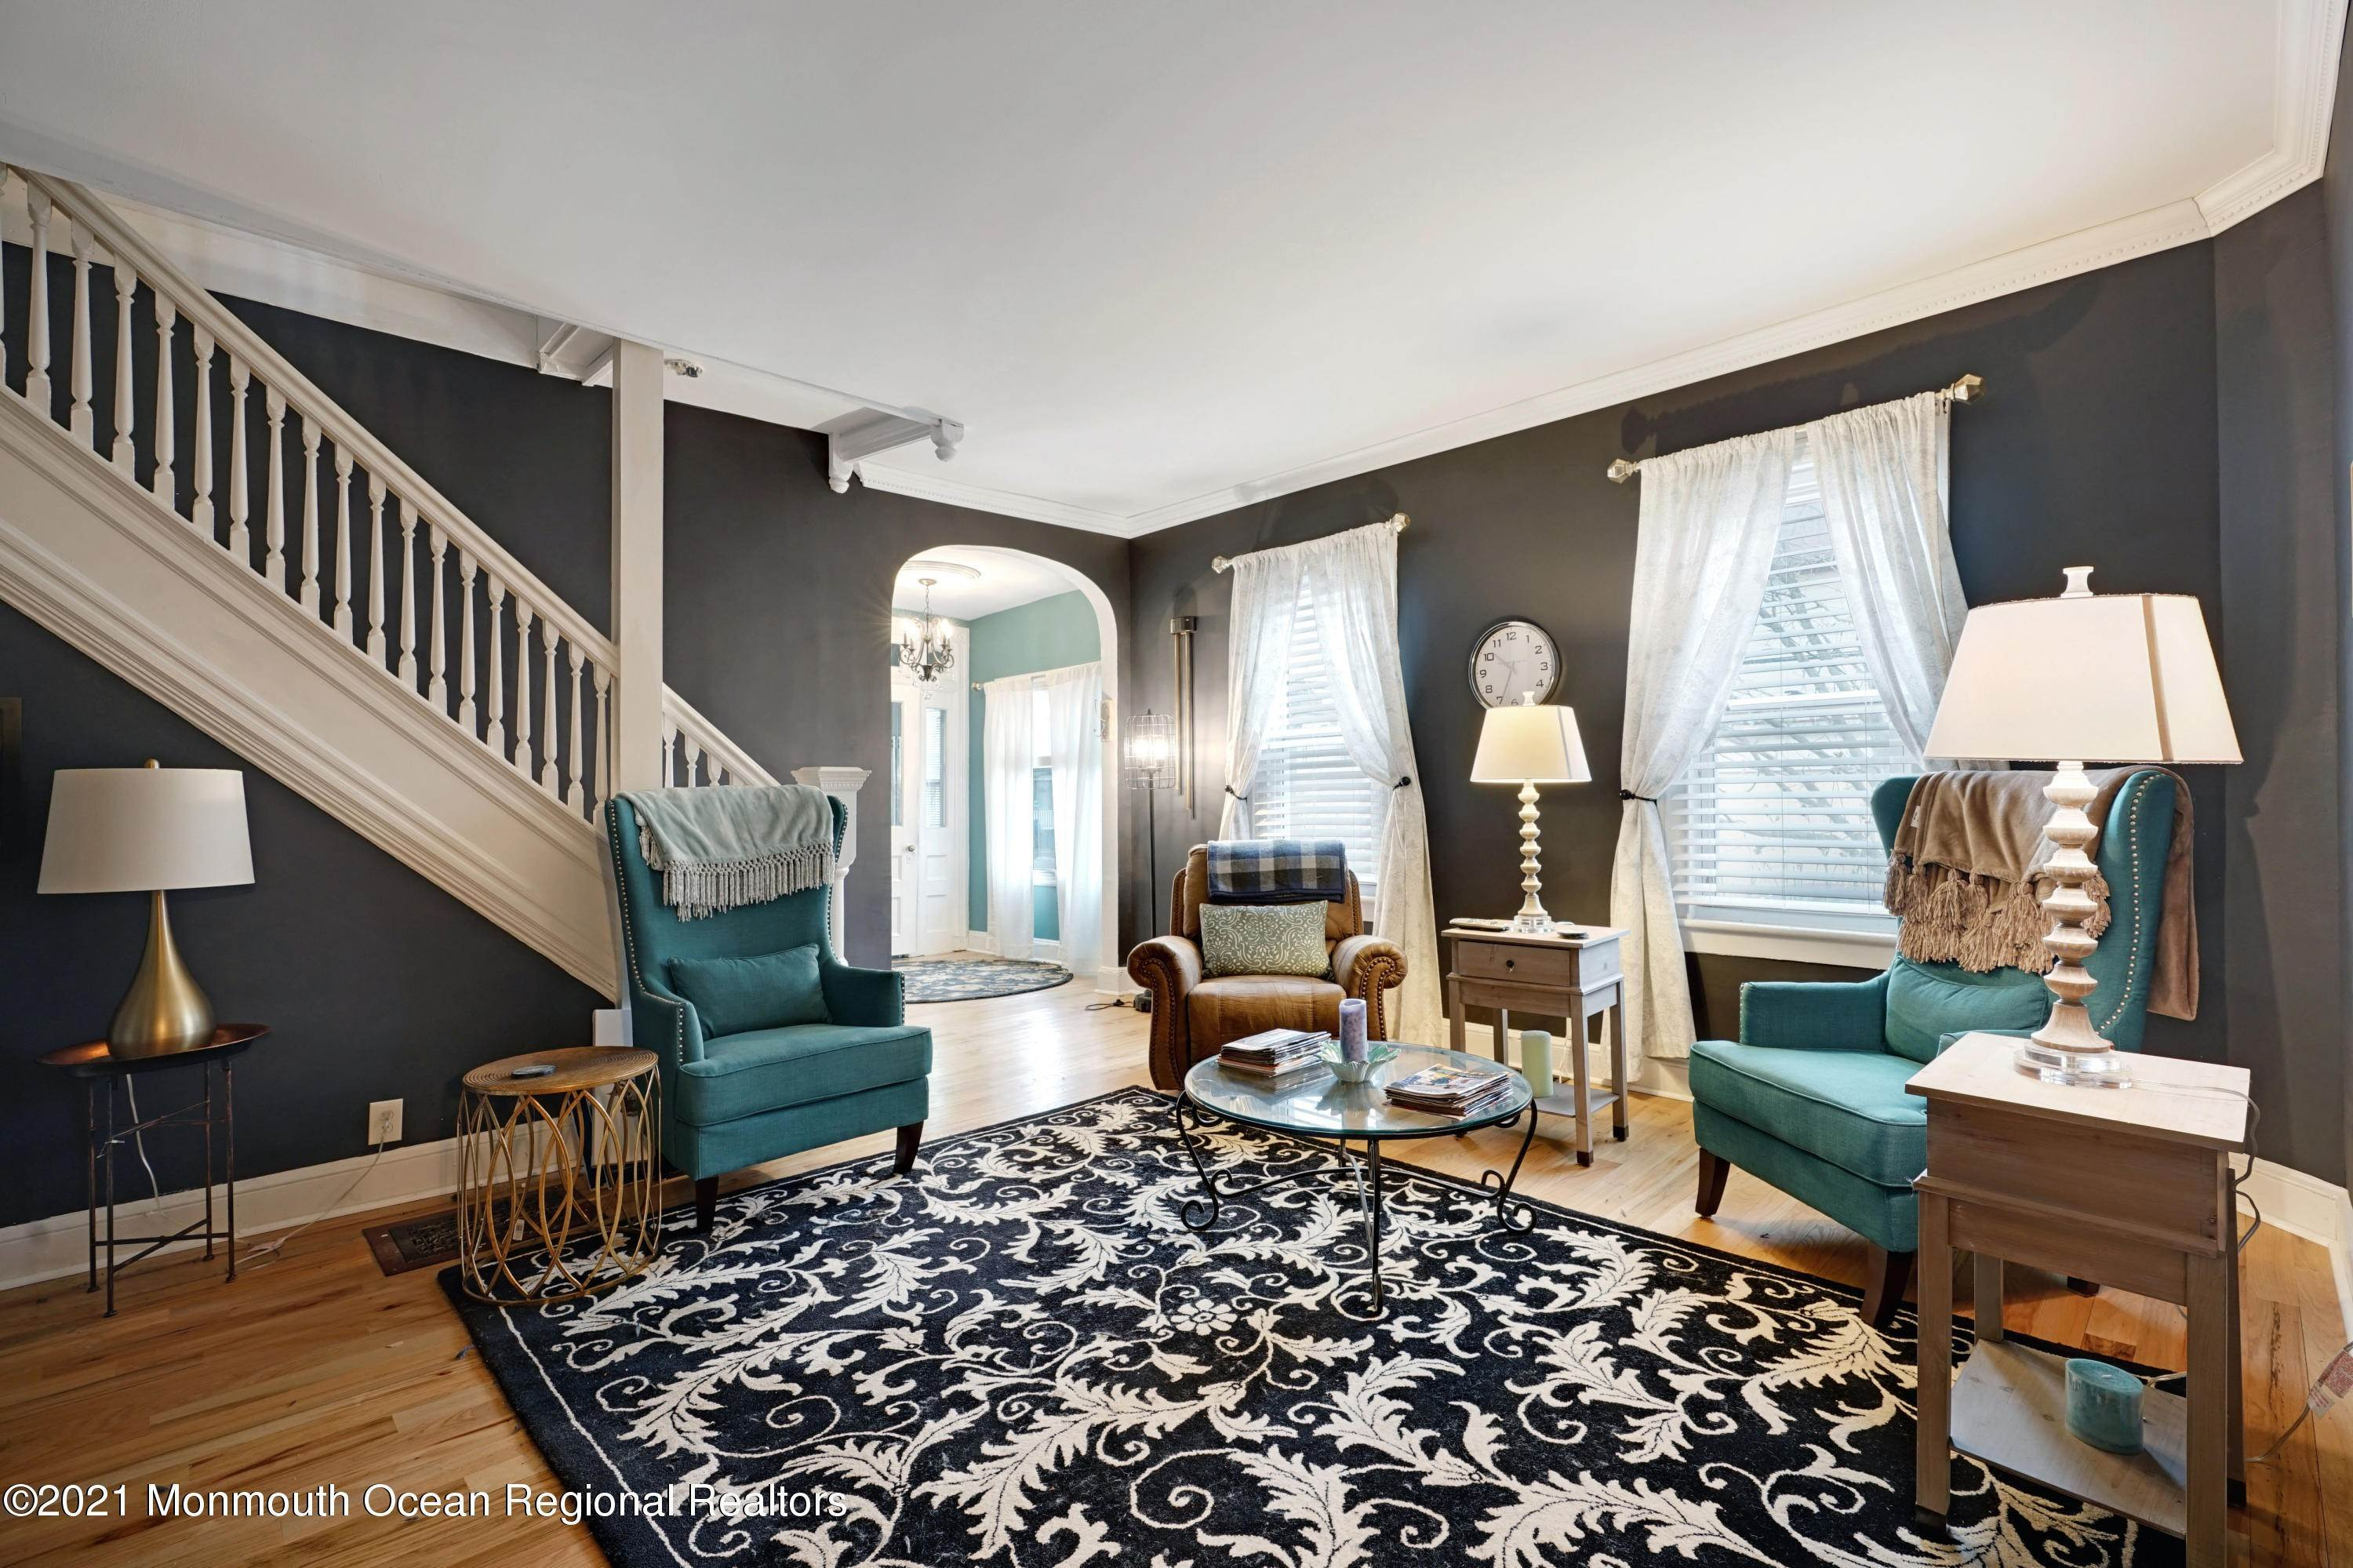 4. Single Family Homes for Sale at 621 Sewall Avenue Asbury Park, New Jersey 07712 United States